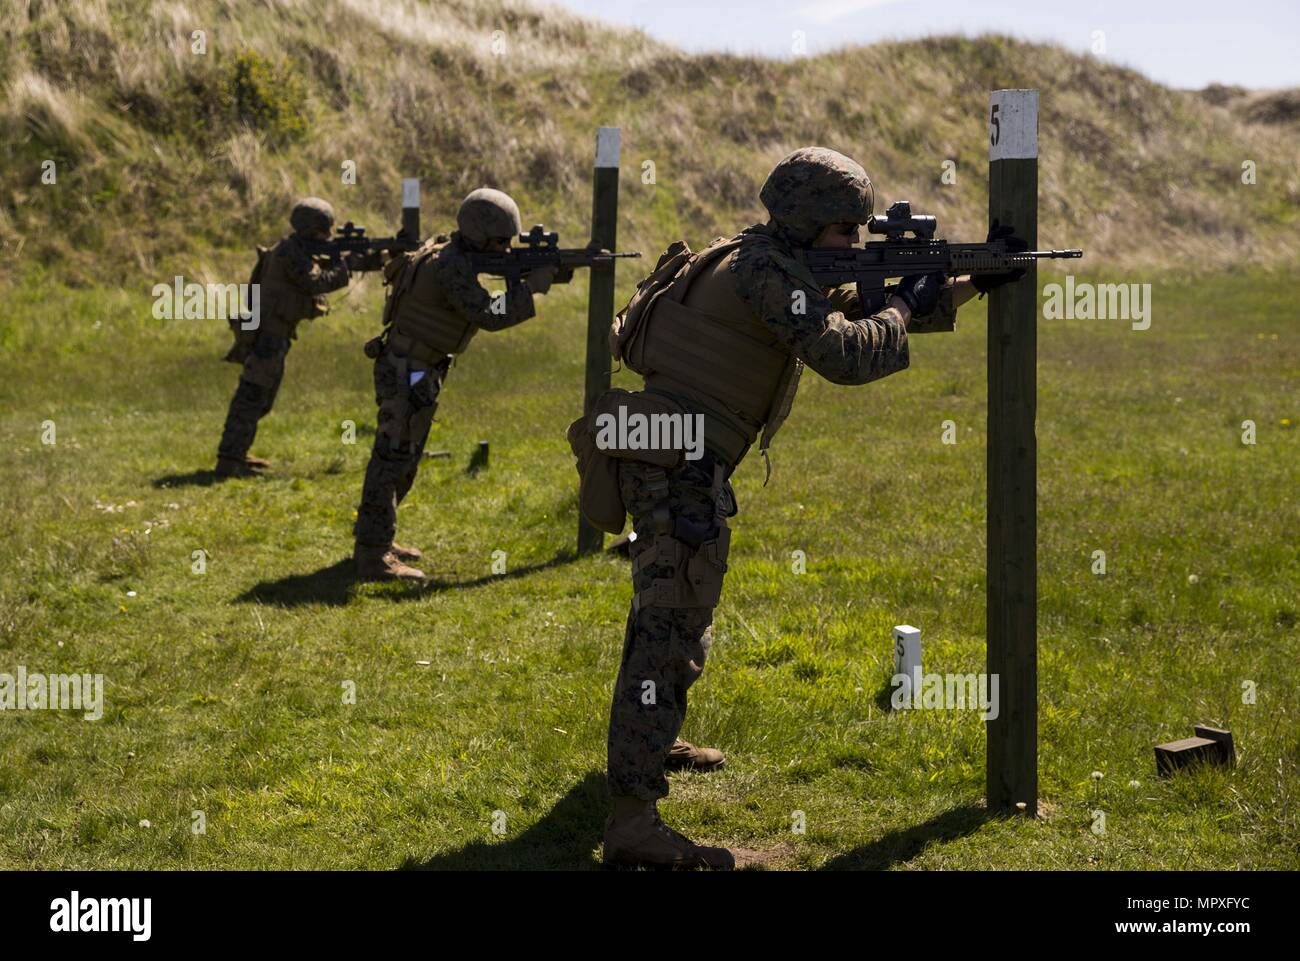 U.S. Marines with Marksmanship Training Company, Weapons Training Battalion, conduct shooting drills with a SA80 A2 assault rifle during the Royal Marine Operational Shooting Competiton (RMOSC) at Altcar Training Camp, Hightown, United Kingdom, May 15, 2018, May 15, 2018. The U.S. Marine Corps travels to the United Kingdom annually to compete in the (RMOSC) with the opportunity to exchange operational experiences, physical and markmanship training. (U.S. Marine Corps photo by Cpl. Robert Gonzales). () - Stock Image